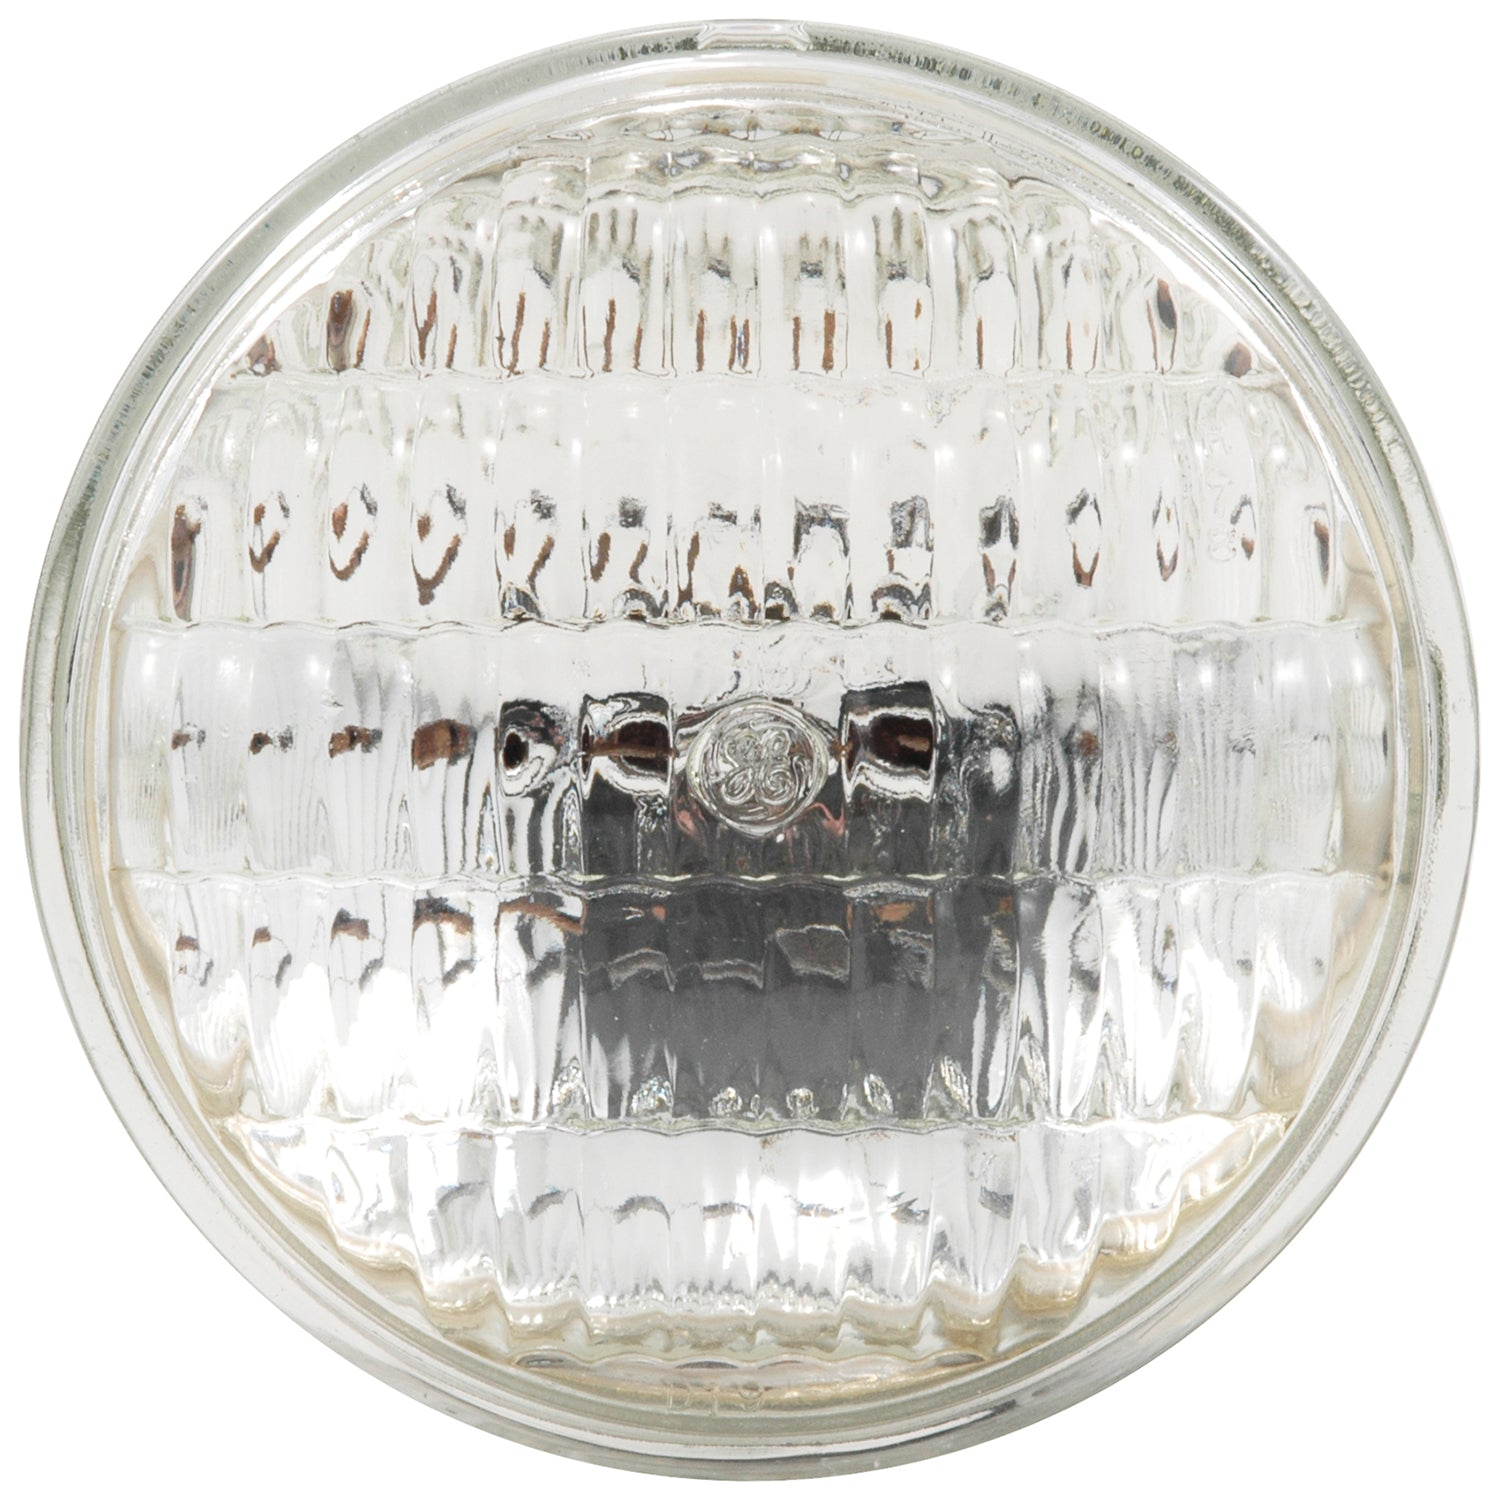 "SYLVANIA 4411 Sealed Beam Headlight (4.5"" Round) PAR36"